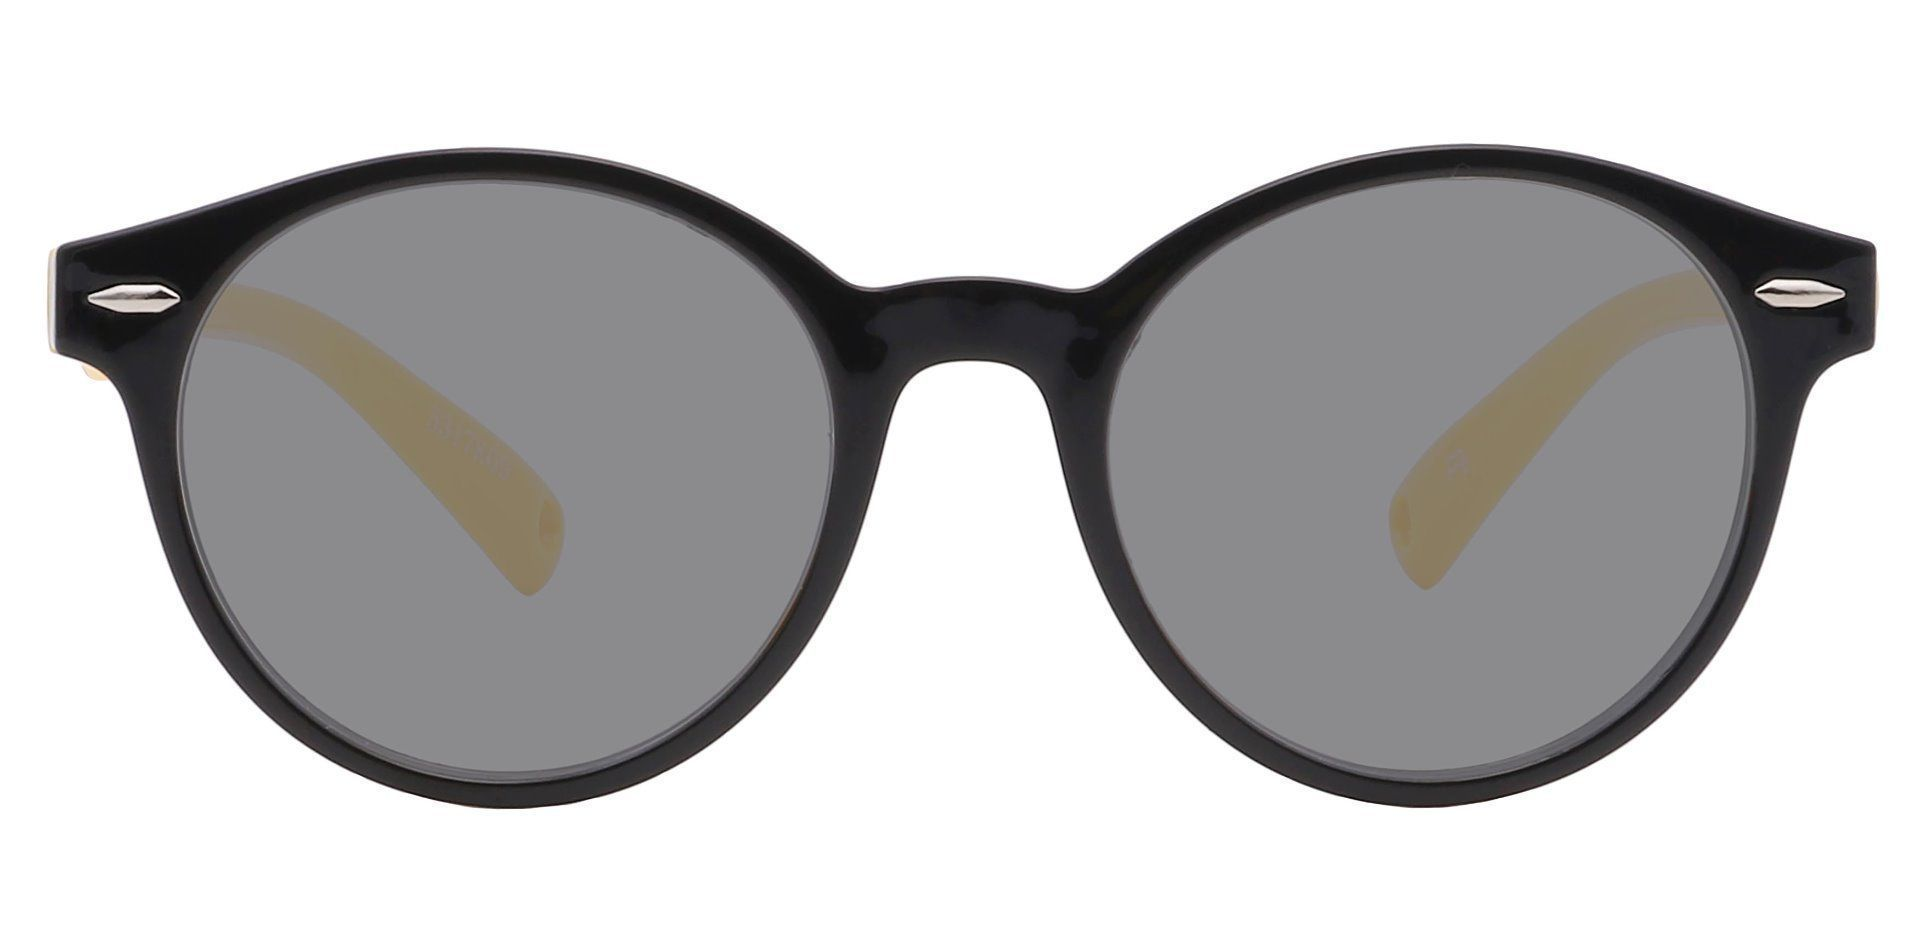 Harris Round Single Vision Sunglasses - Black Frame With Gray Lenses